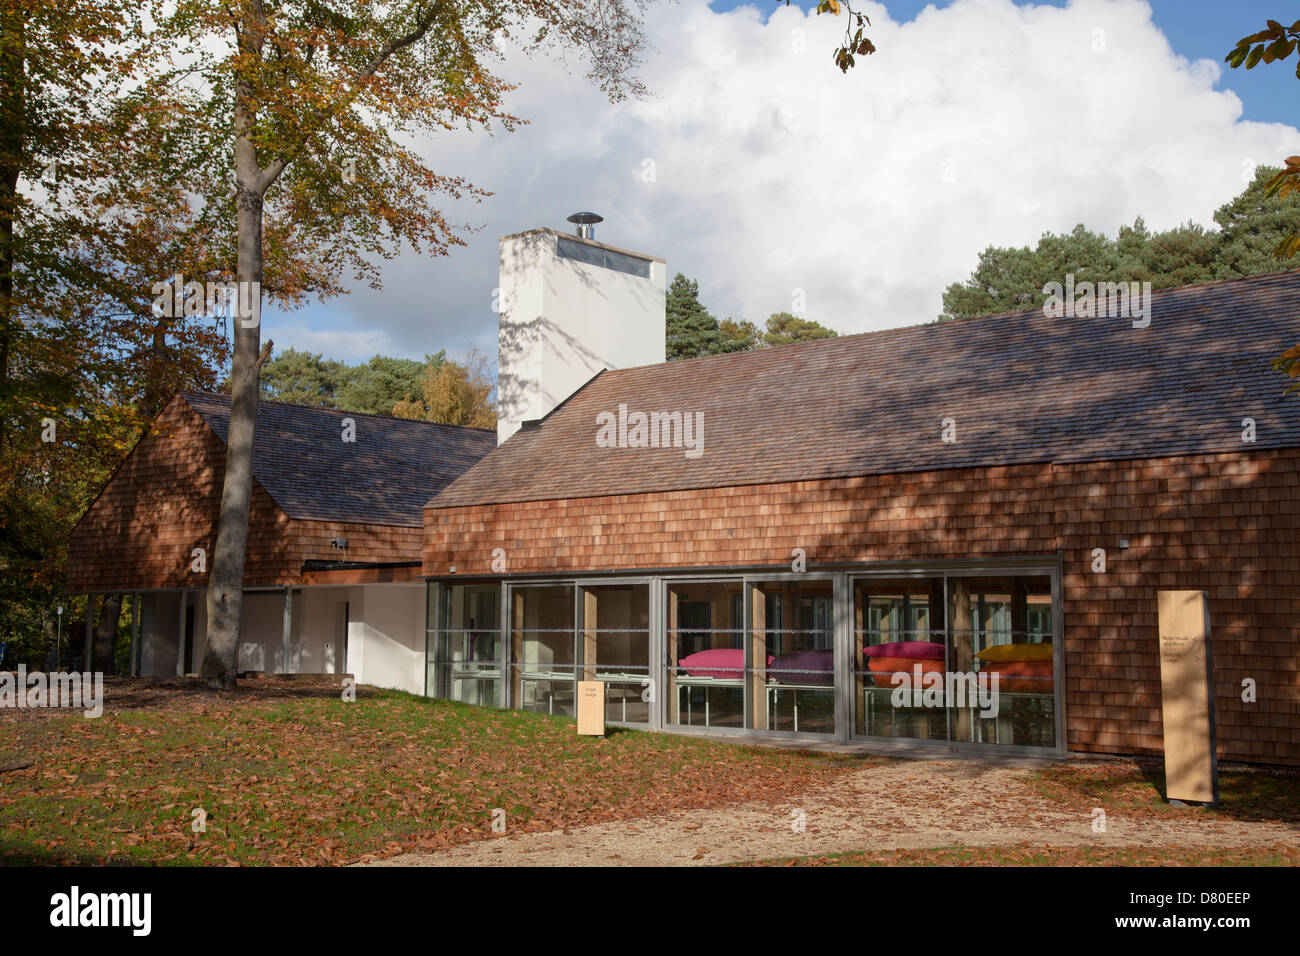 exterior of Runways End Outdoor Centre shingle covered building - Stock Image